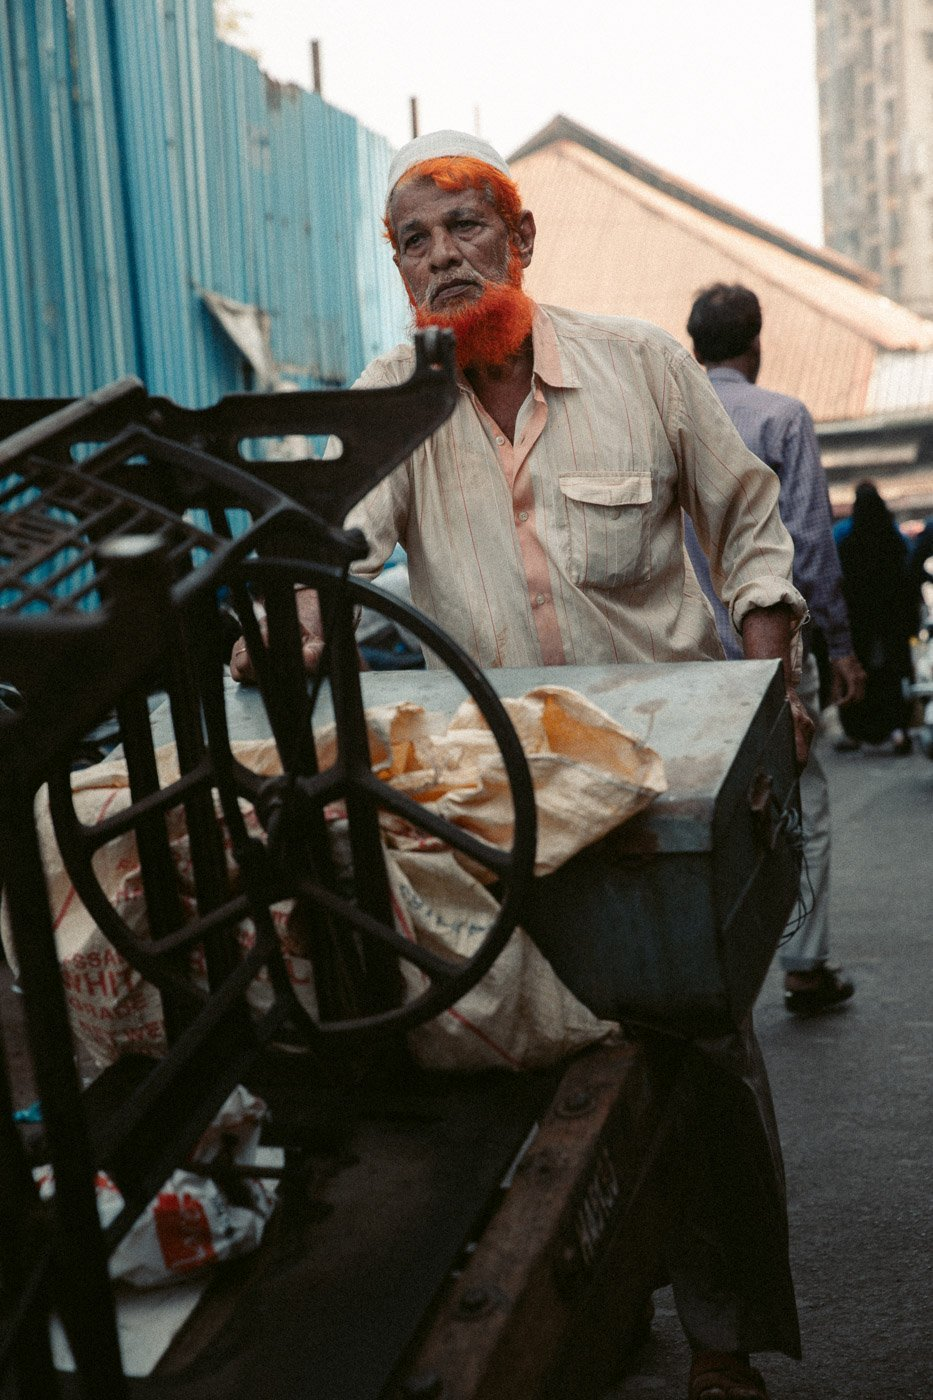 PORTRAIT OF A MAN IN MUMBAI'S THIEVES MARKET